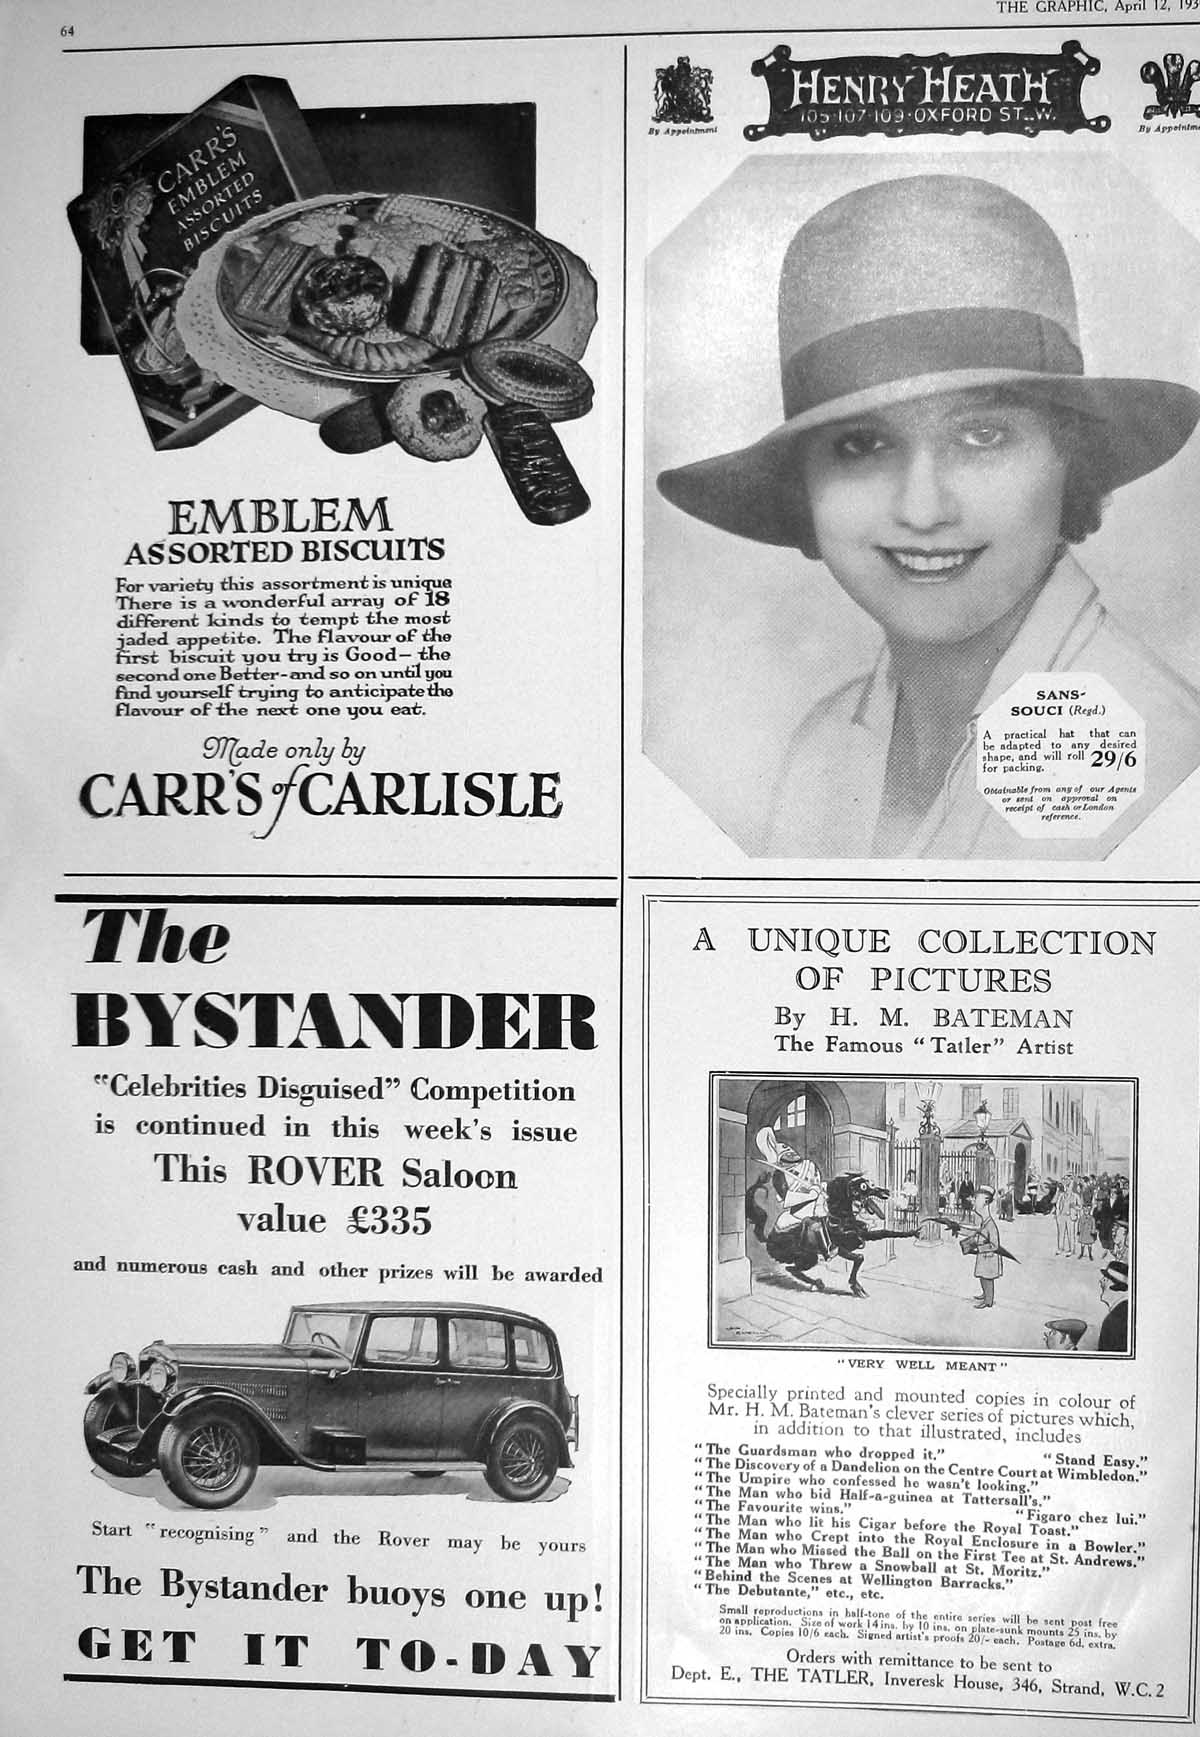 [1930 Henry Heath Carrs Biscuits Bystander Tatler Swan Edgar Woodr 064M228 ]